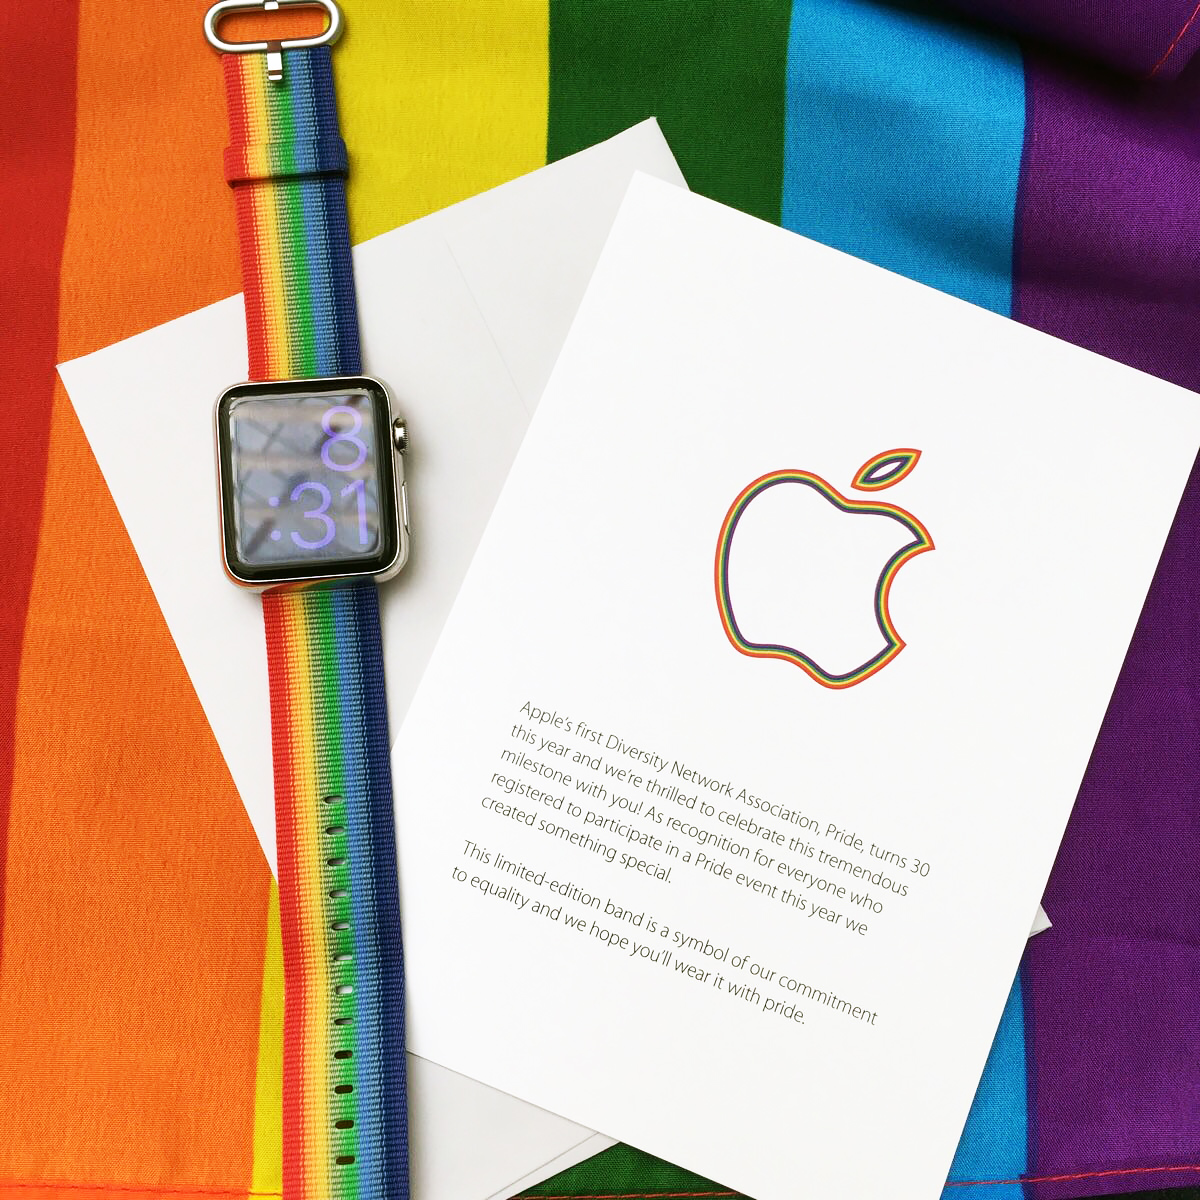 Das limitierte Apple Watch Armband in der Pride Edition